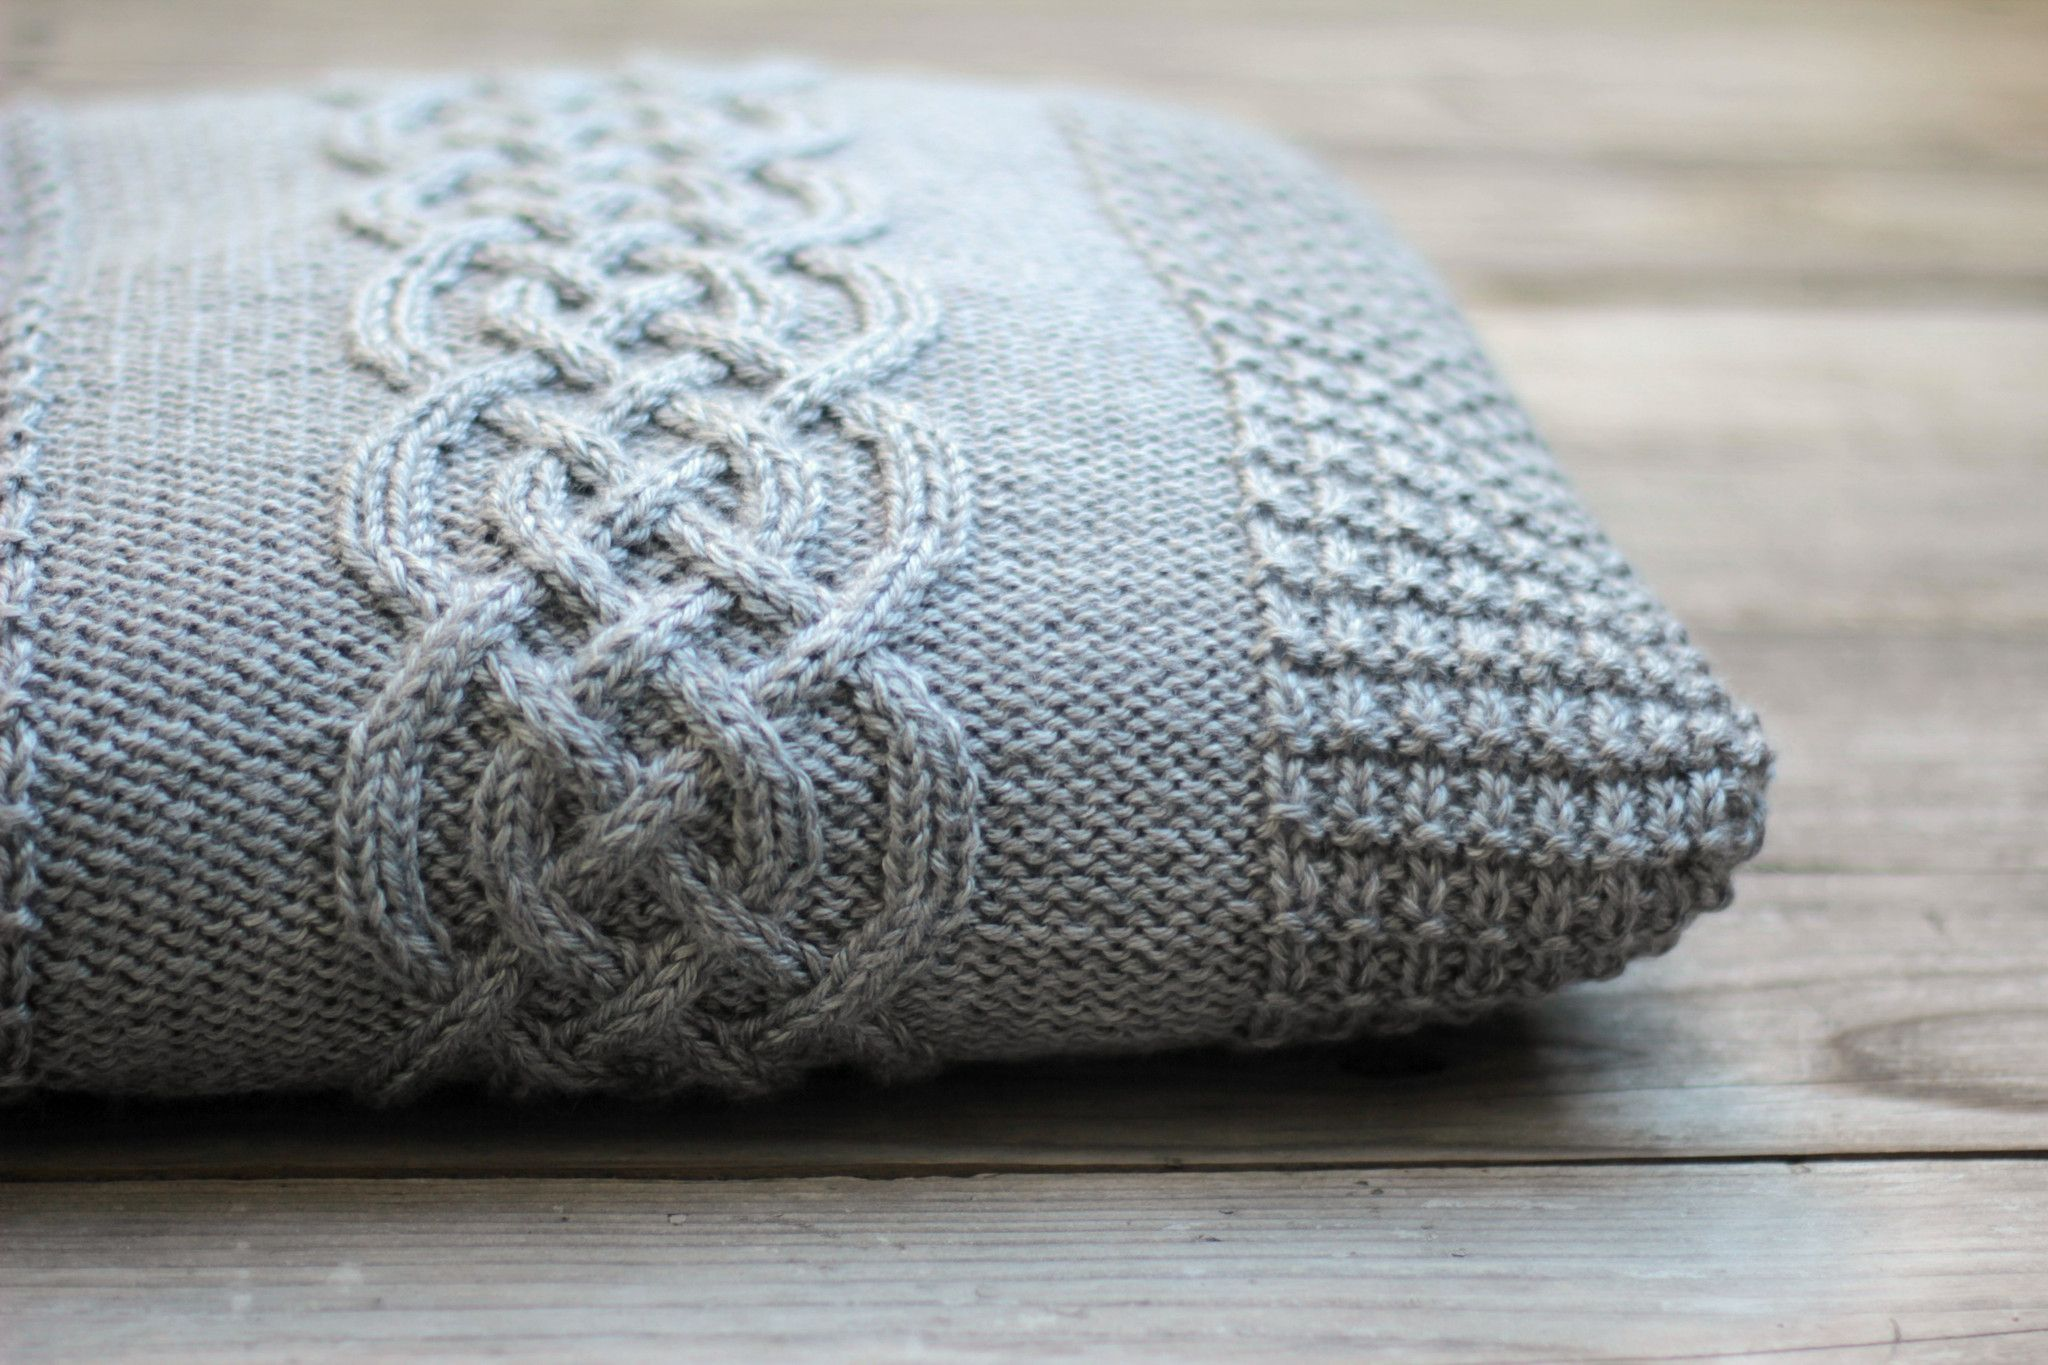 Knitting pattern knitting tutorial for a pillow cover with a central cable motif and waffle pattern borders. In the pattern you will find a written ... & Knitted pillow case pattern DIY knitting tutorial knitting ... pillowsntoast.com